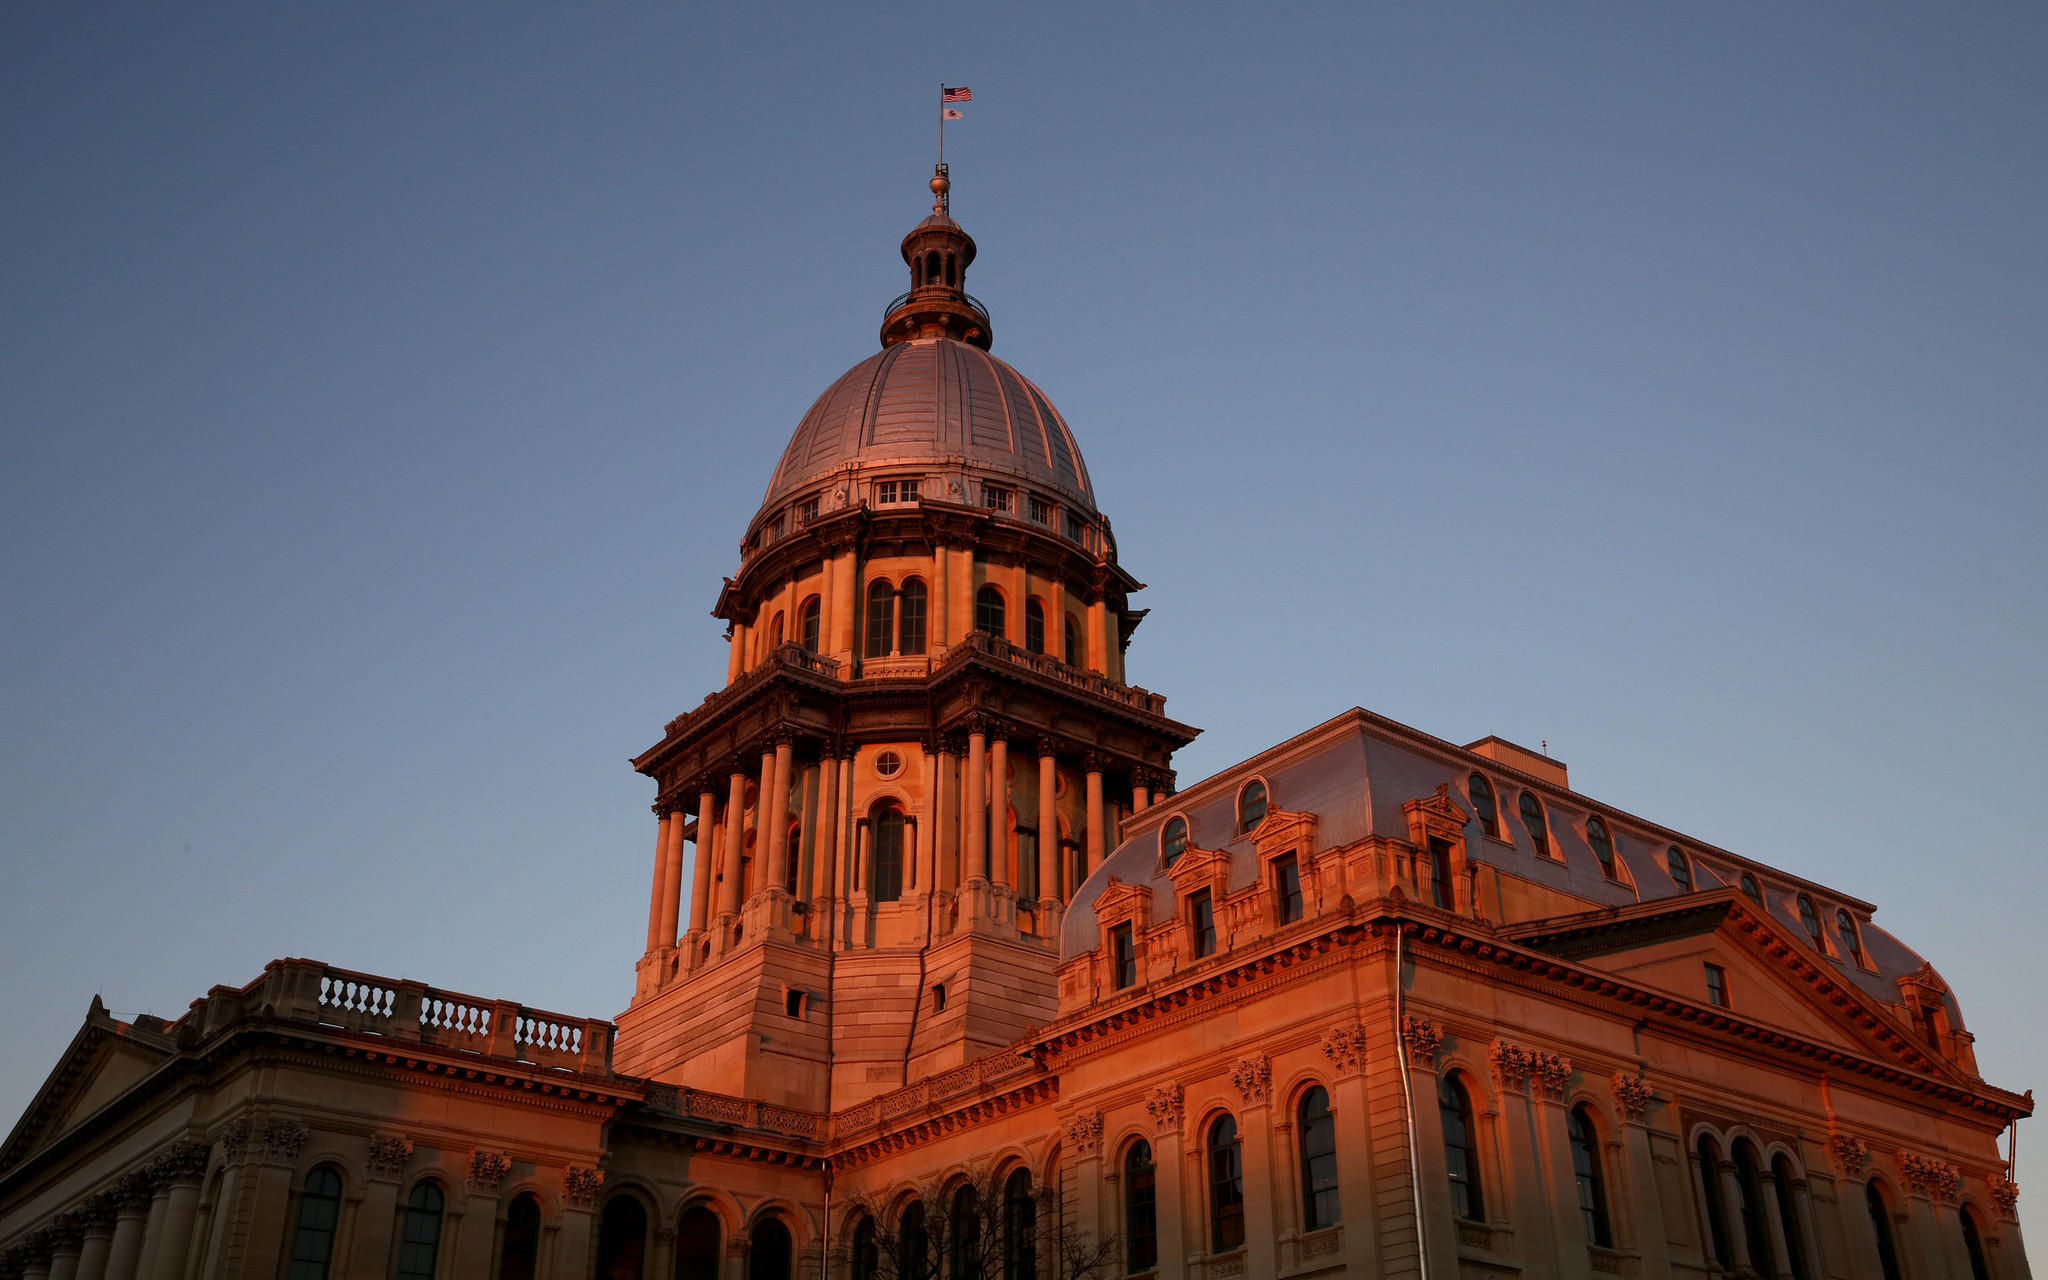 Illinois State Capitol building glows under the setting sun in Springfield on Nov. 7, 2013.